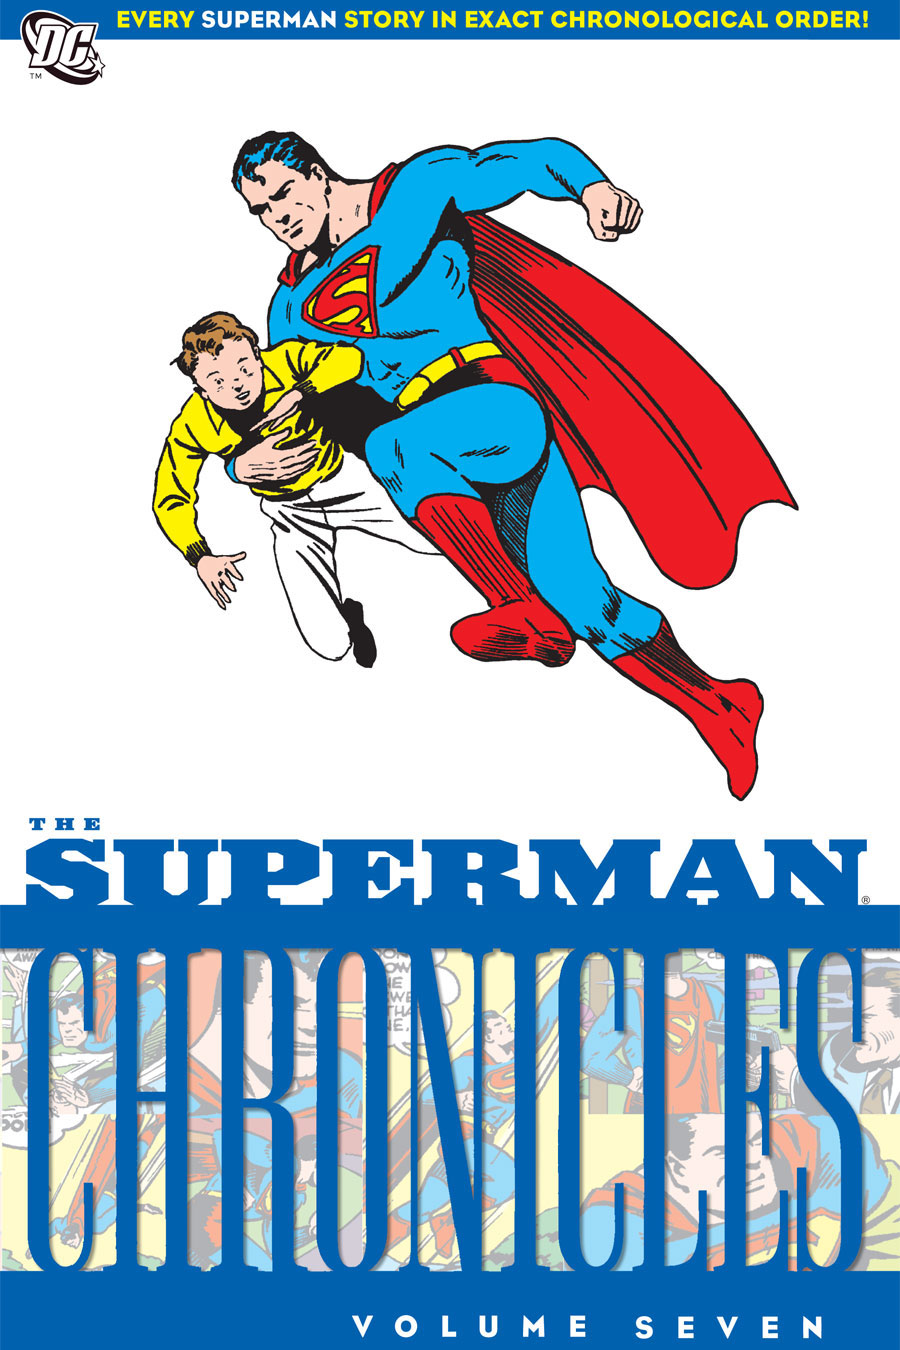 Superman Chronicles Vol. 7 (Collected)